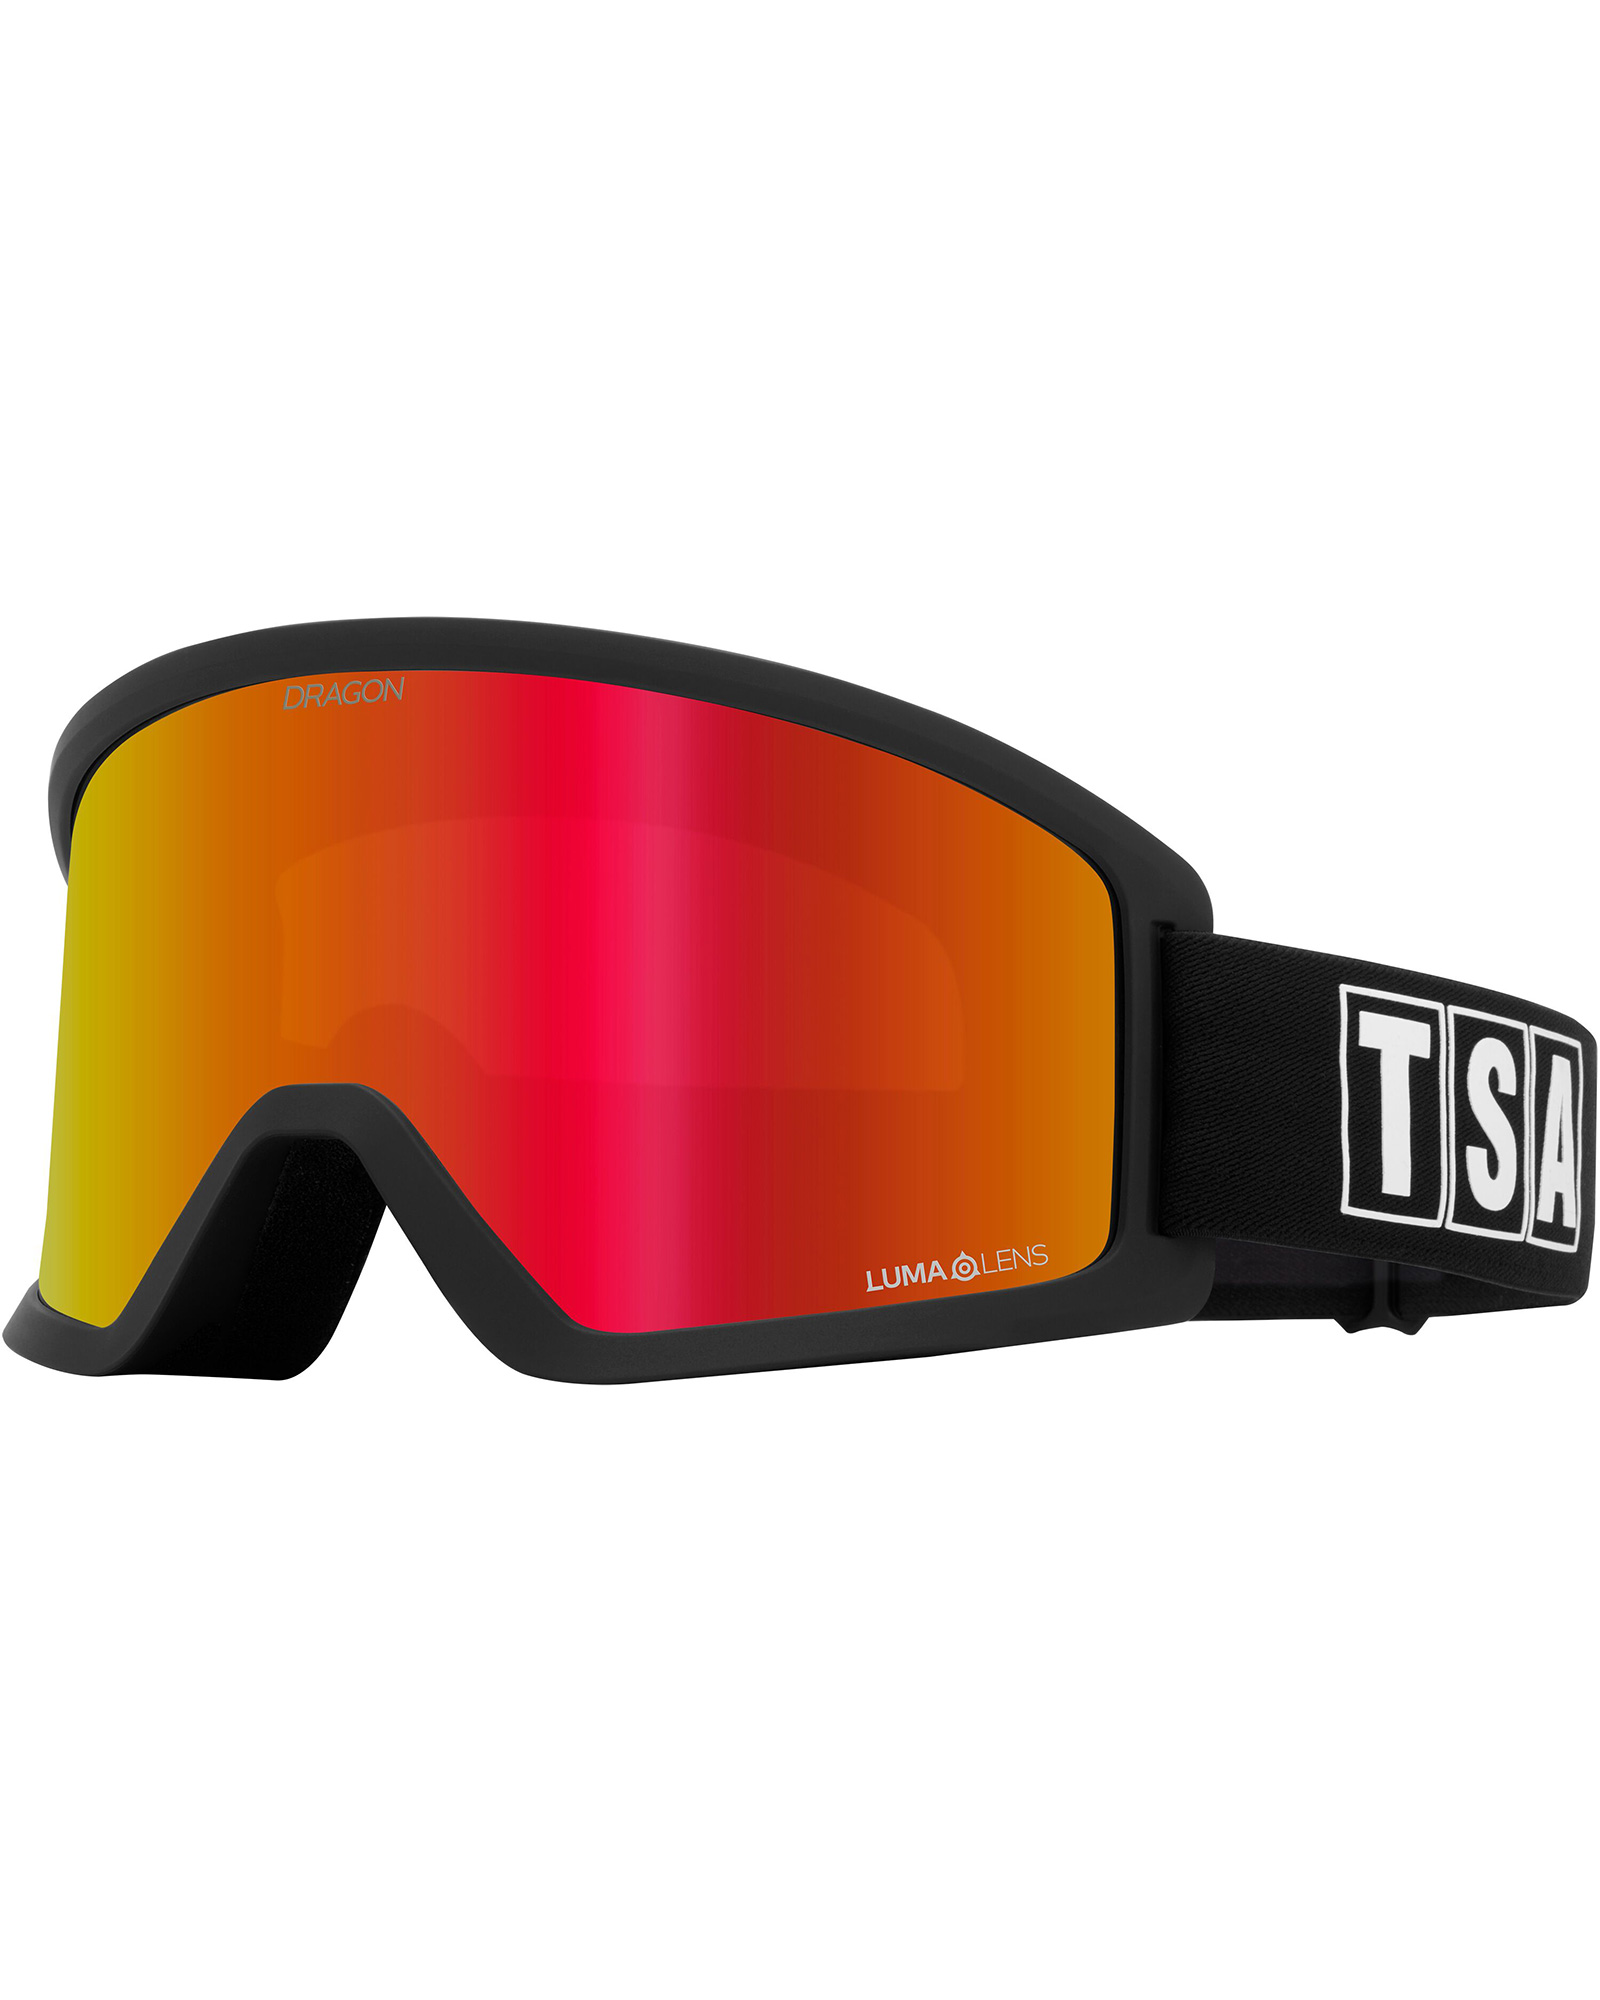 Dragon DX3 Dragon x TSA / Lumalens Red Ionized + Lumalens Yellow Goggles 2019 / 2020 0